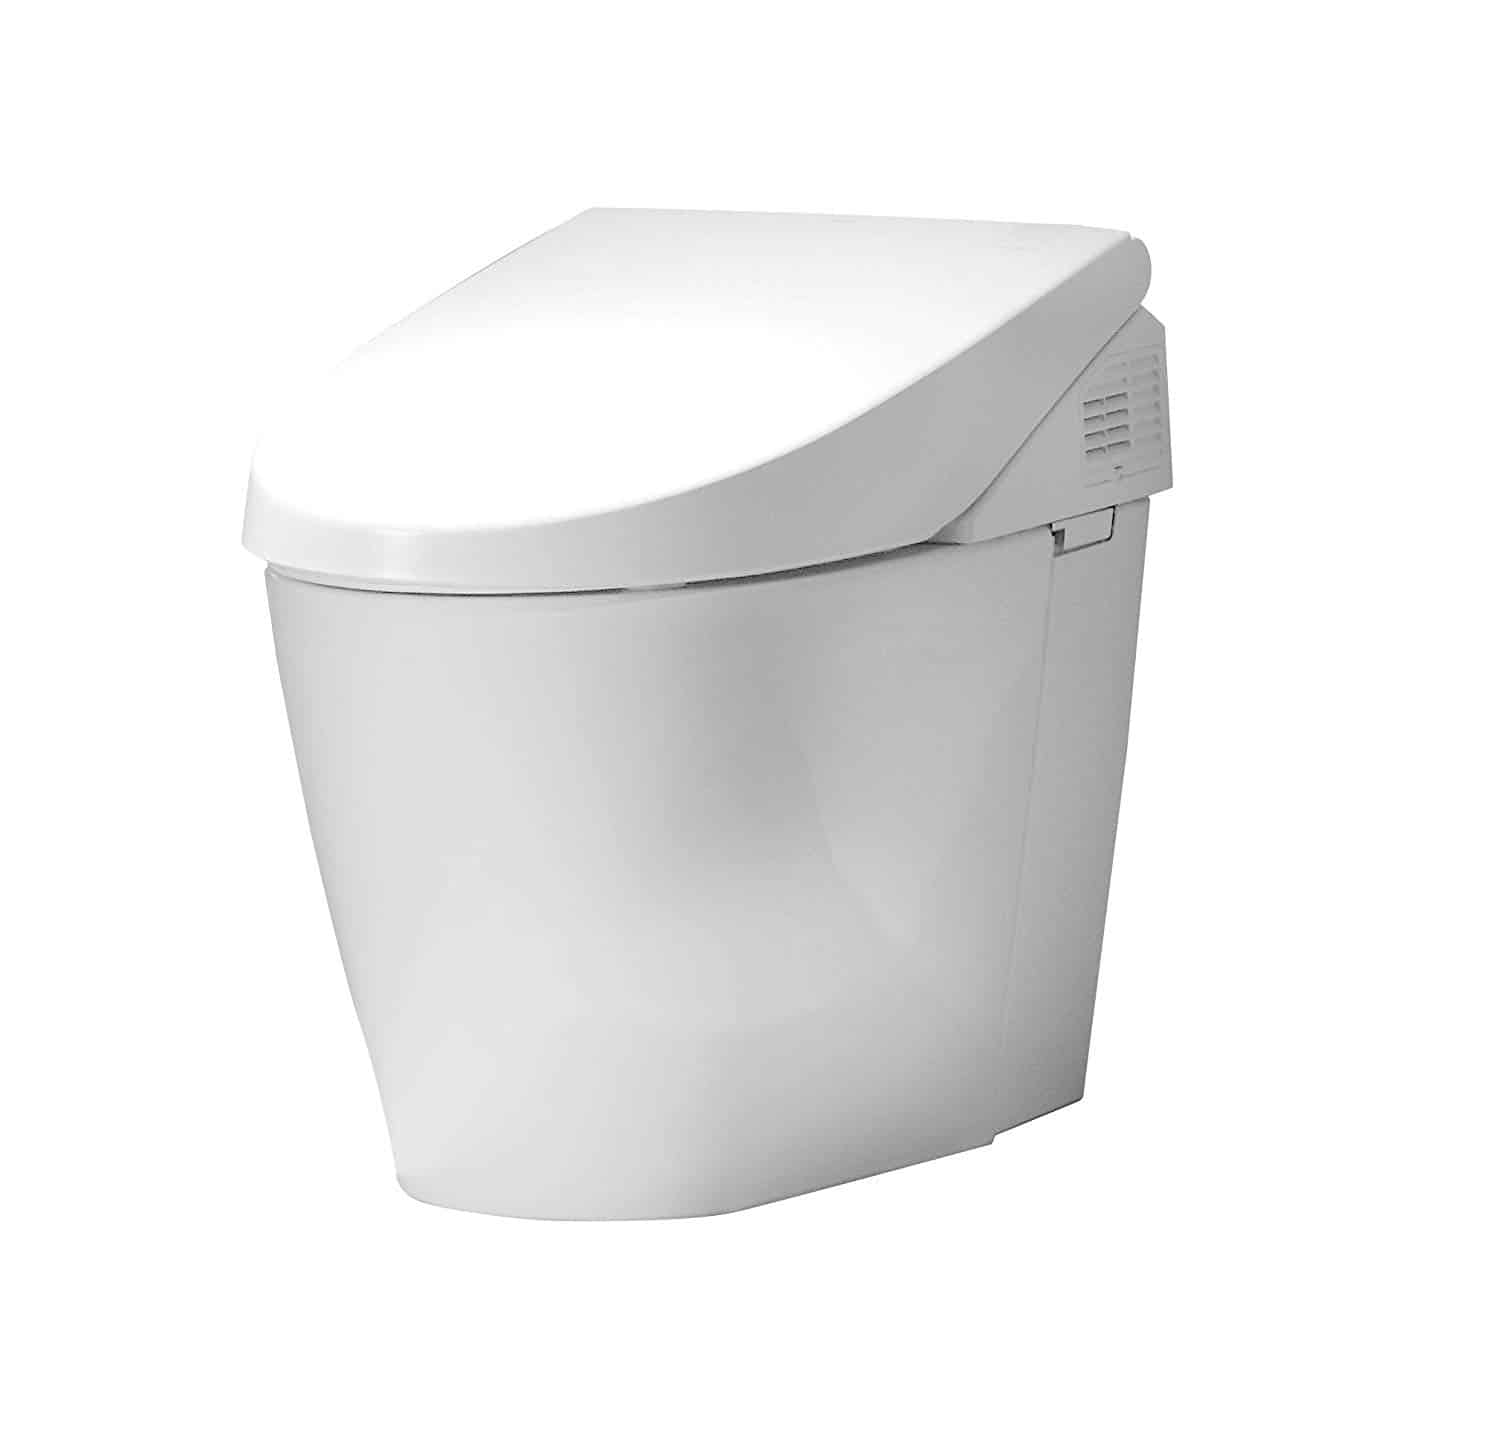 7 Best Pressure Assisted Toilets Of 2019 Buying Guide